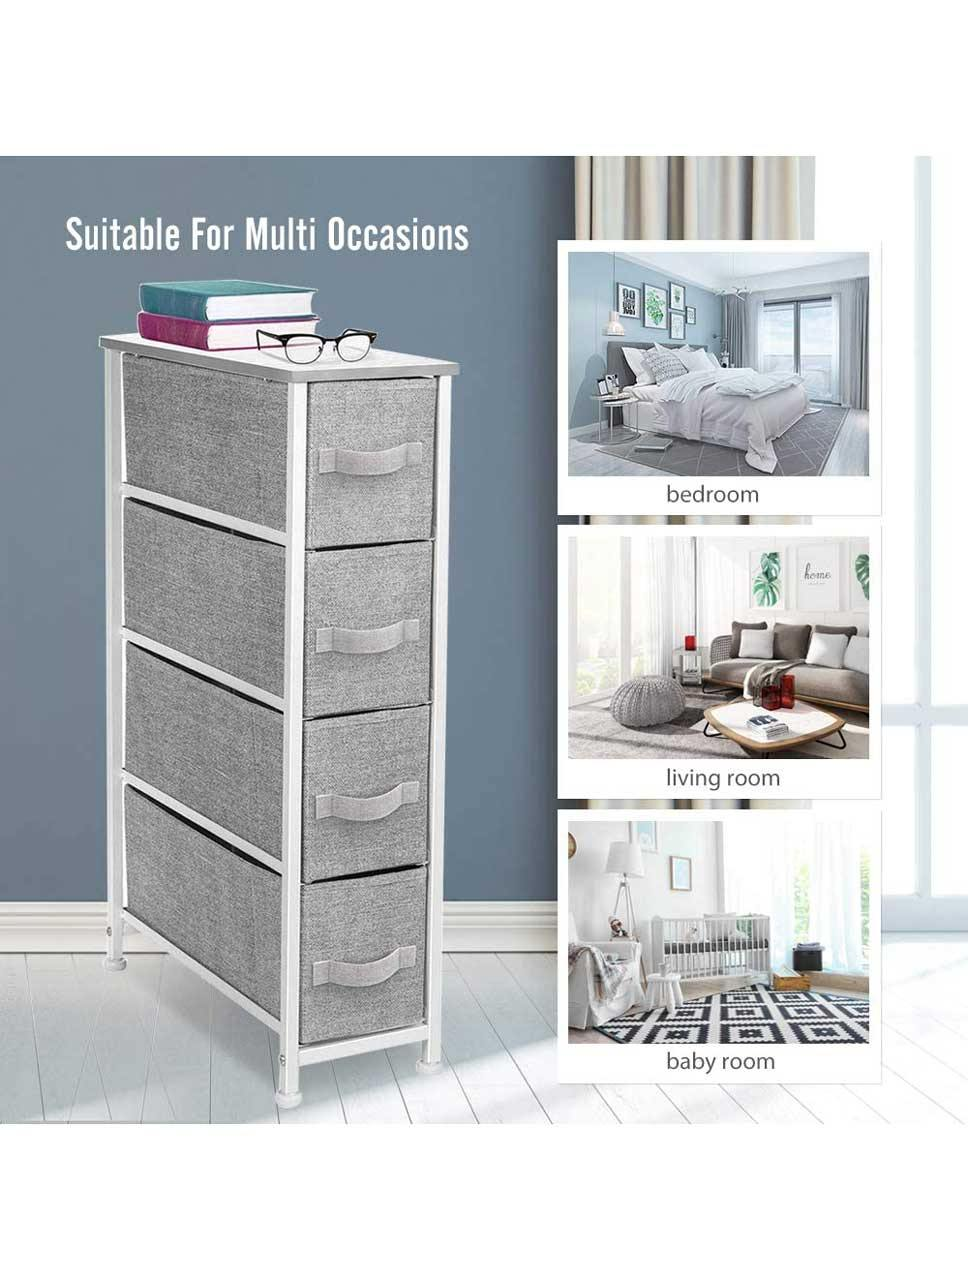 4-Drawer Fabric Dresser Storage Tower Organizer Unit